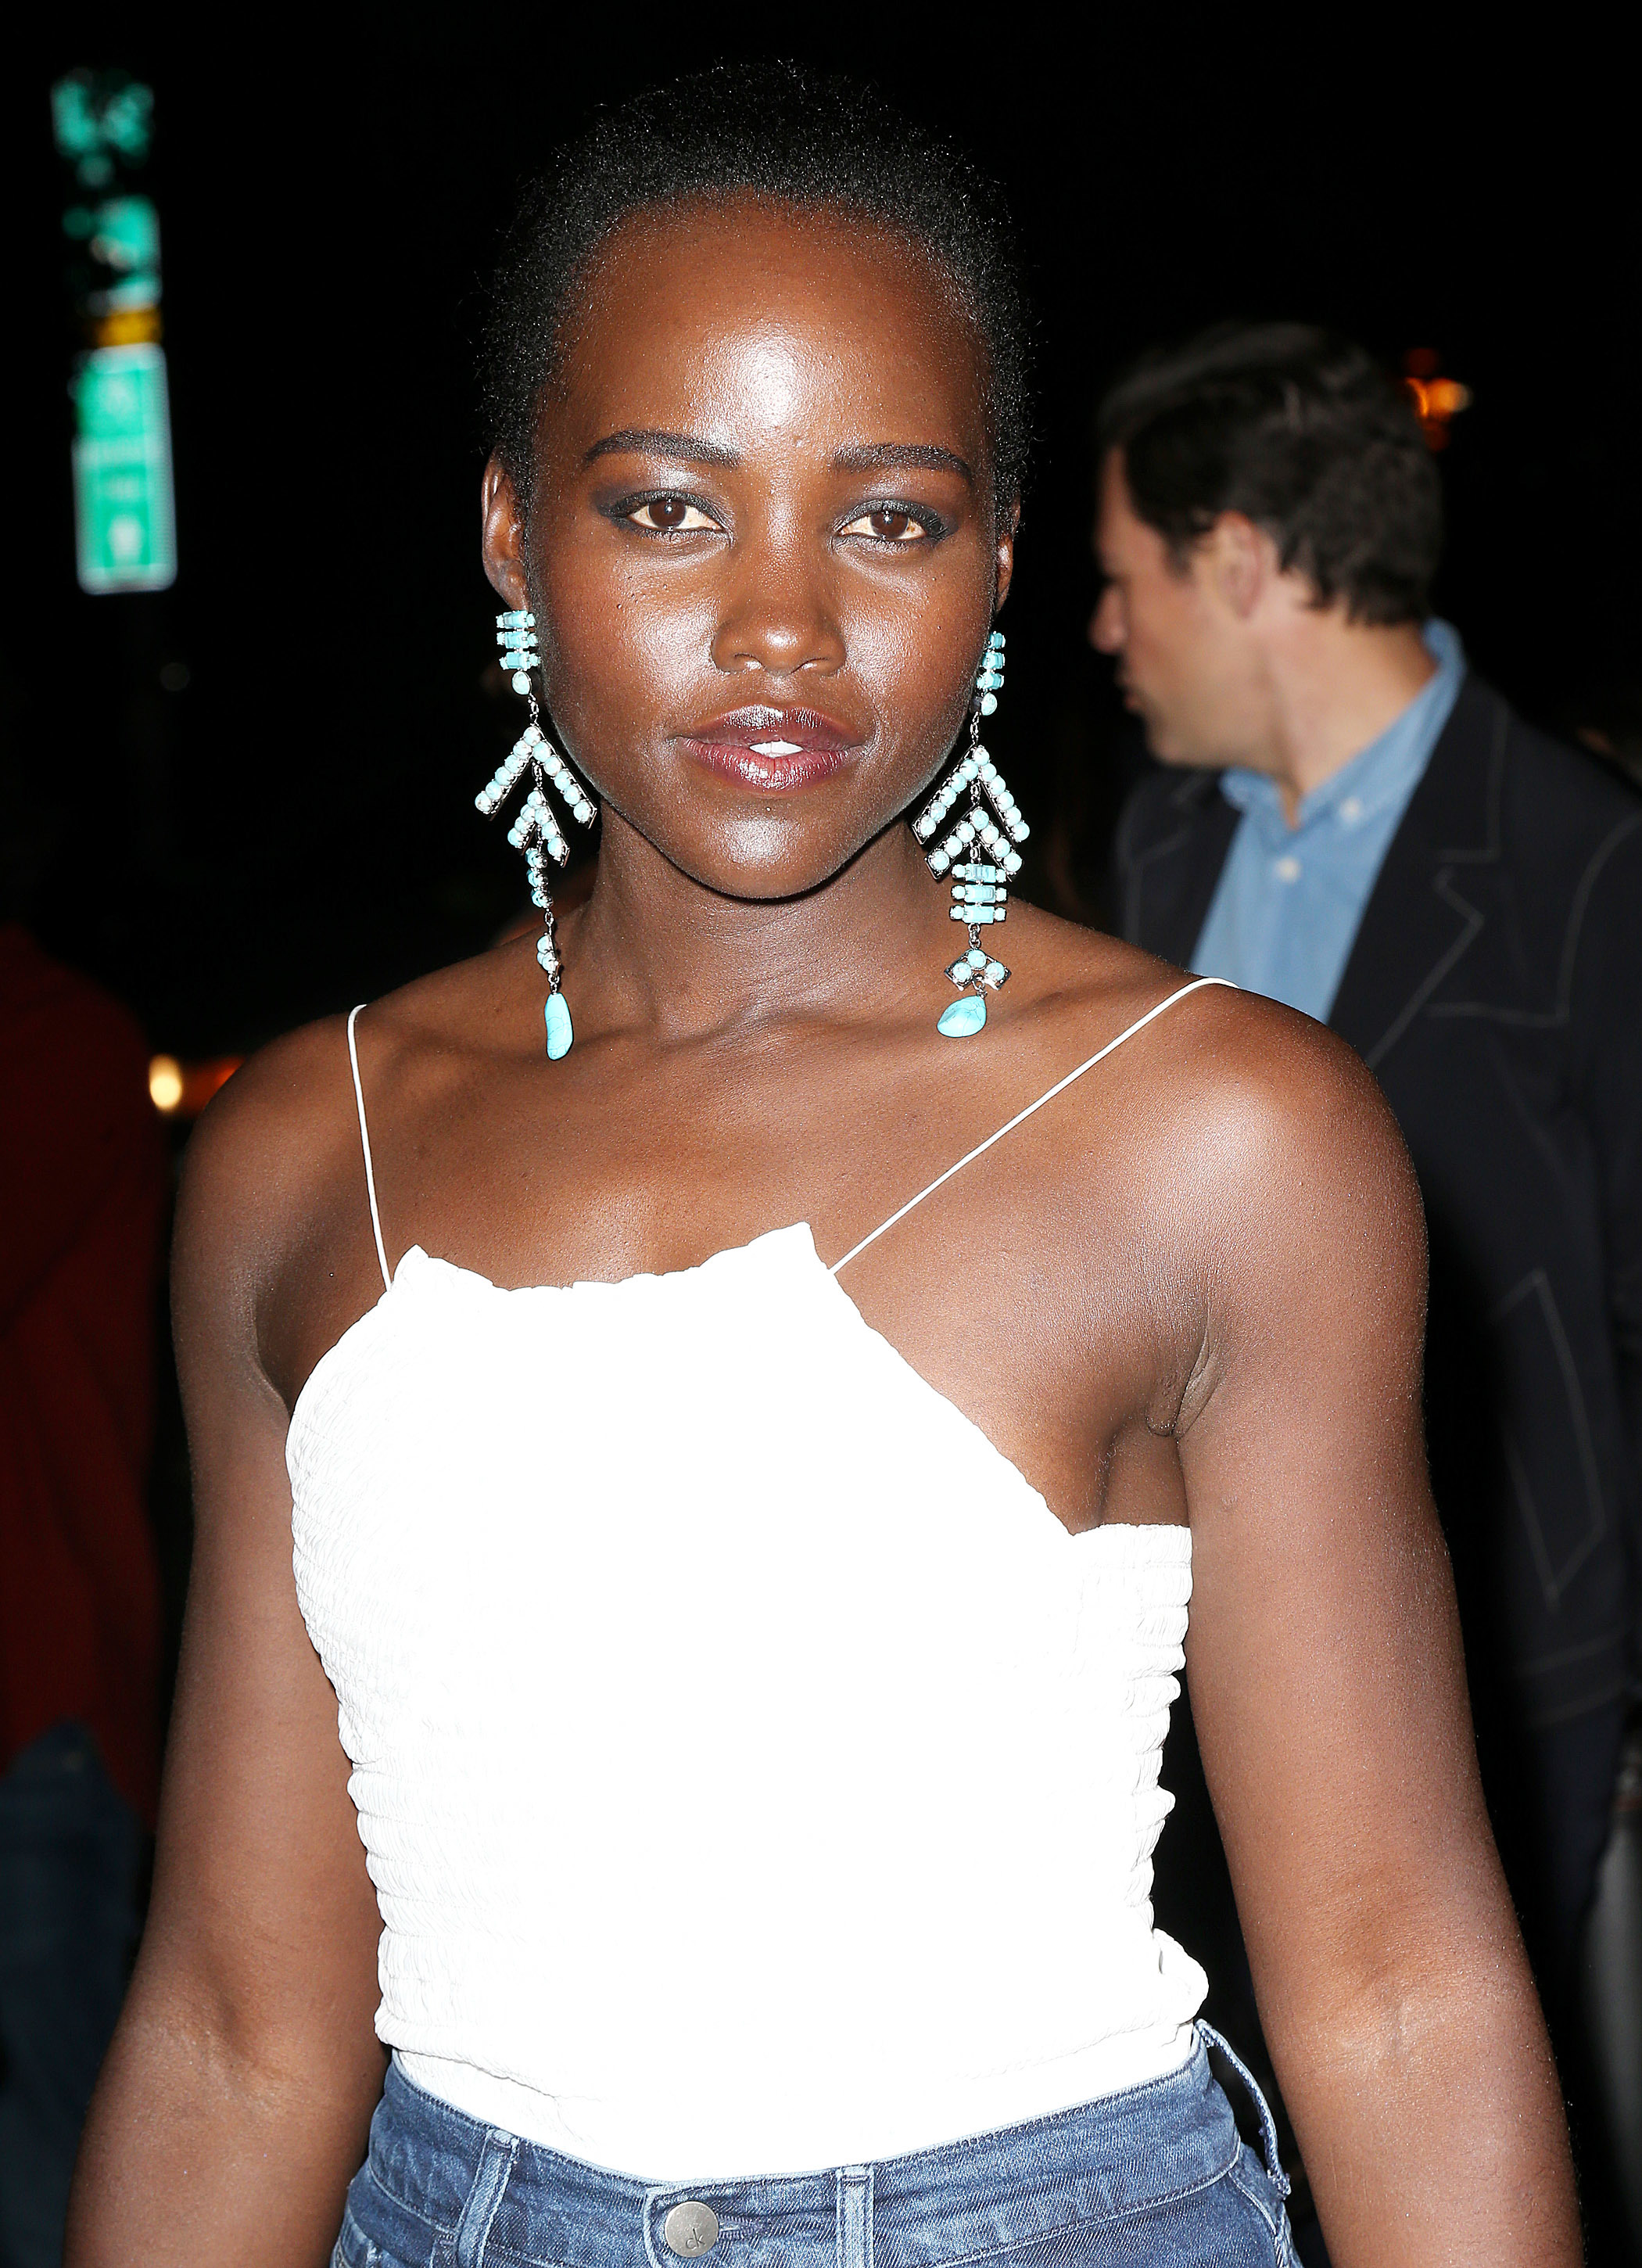 Lupita Nyong'o attends the Mert and Marcus book launch during New York Fashion Week on Sept. 7, 2017.